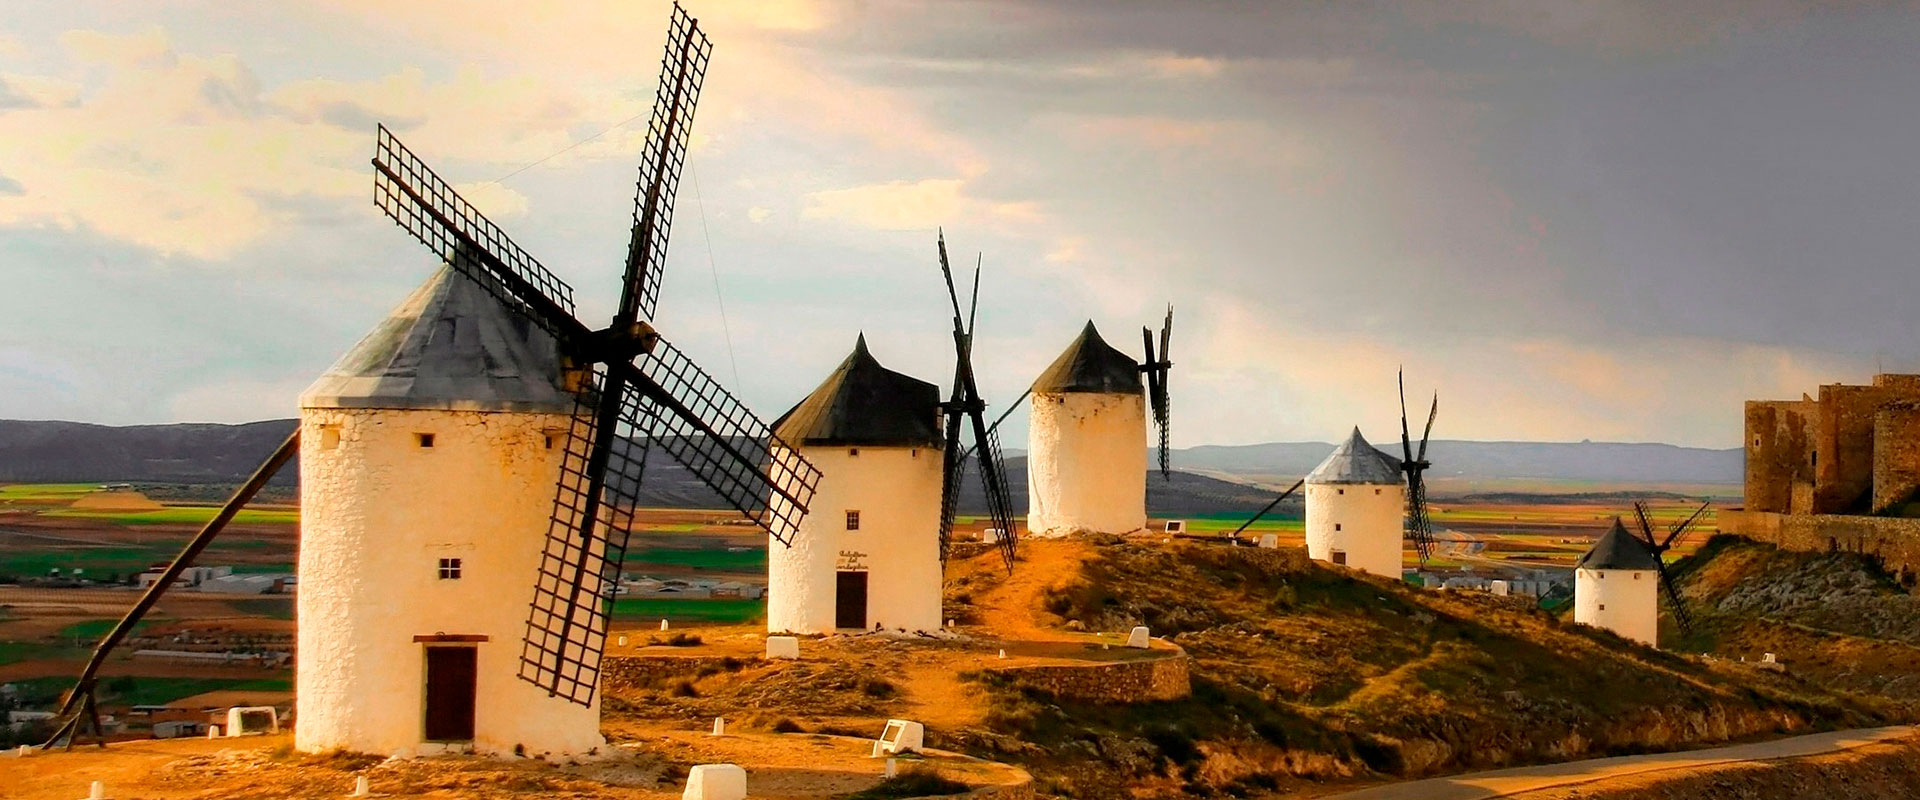 Tour VIP La Mancha. Discover the land of La Mancha, its mills, its wines, castles and excellent gastronomy.